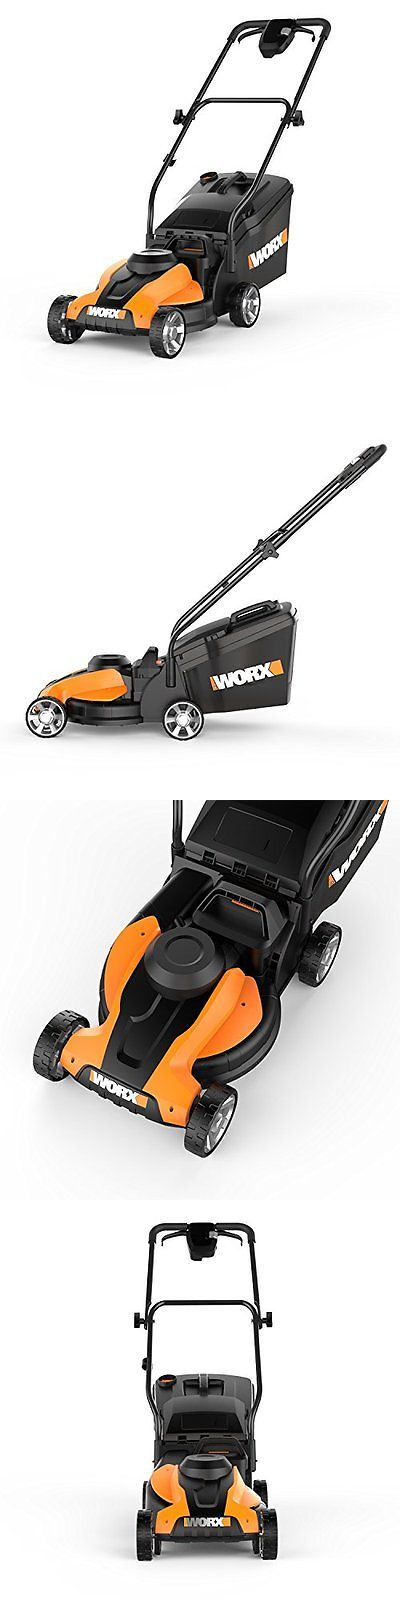 Walk-Behind Mowers 71272: Worx 14-Inch Walk-Behind Lawn Mowers 24-Volt Cordless Lawn Mower With Easy-Start -> BUY IT NOW ONLY: $259.76 on eBay!